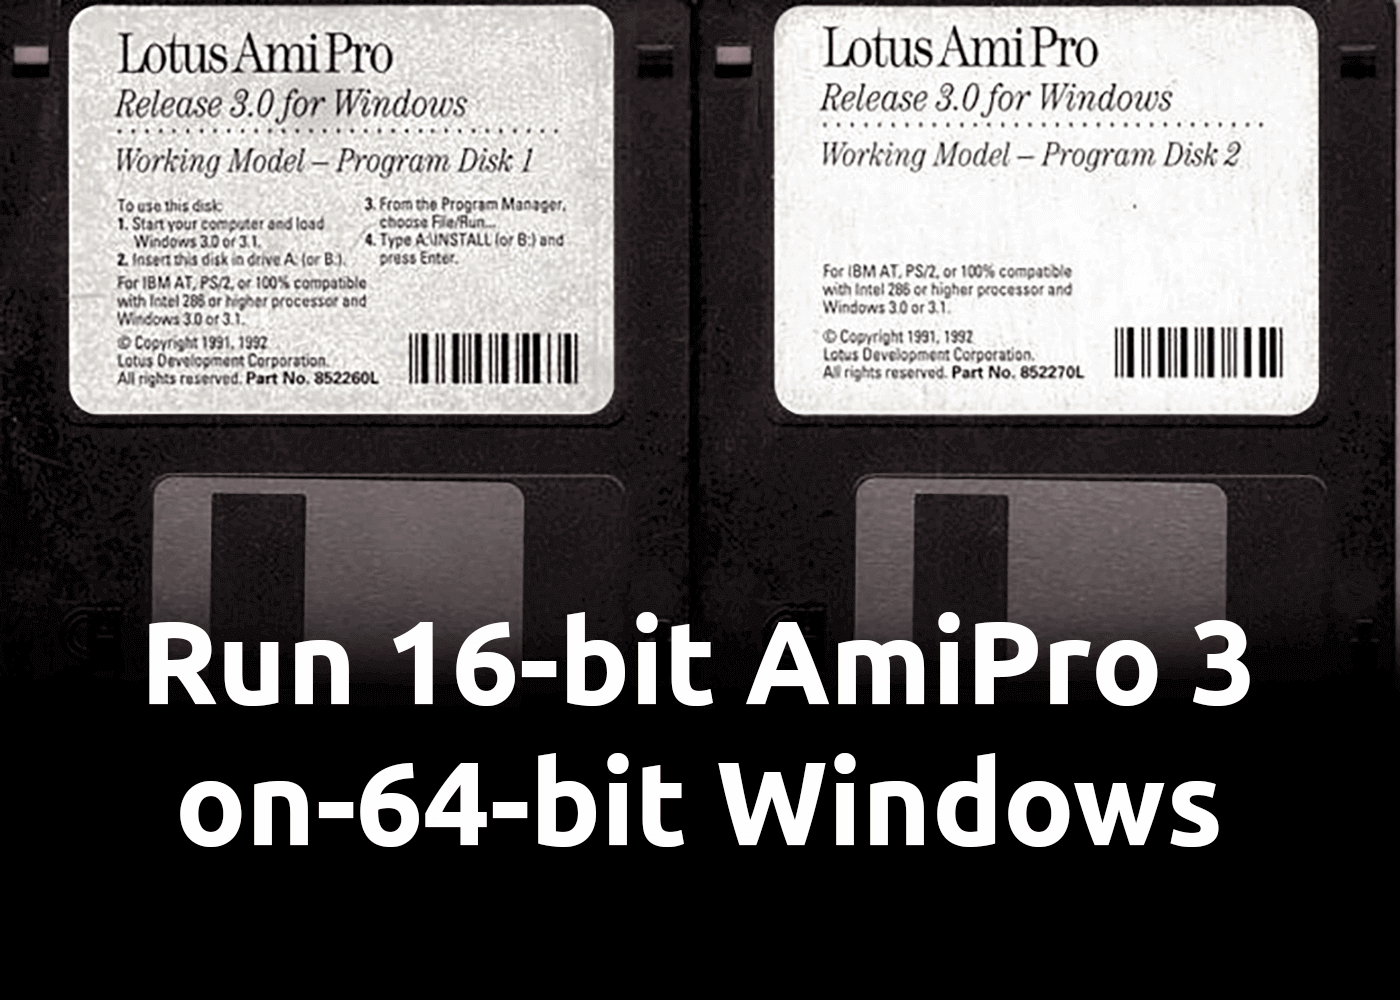 Run 16-Bit Lotus AmiPro 3 (1992) on 64-Bit Windows 10